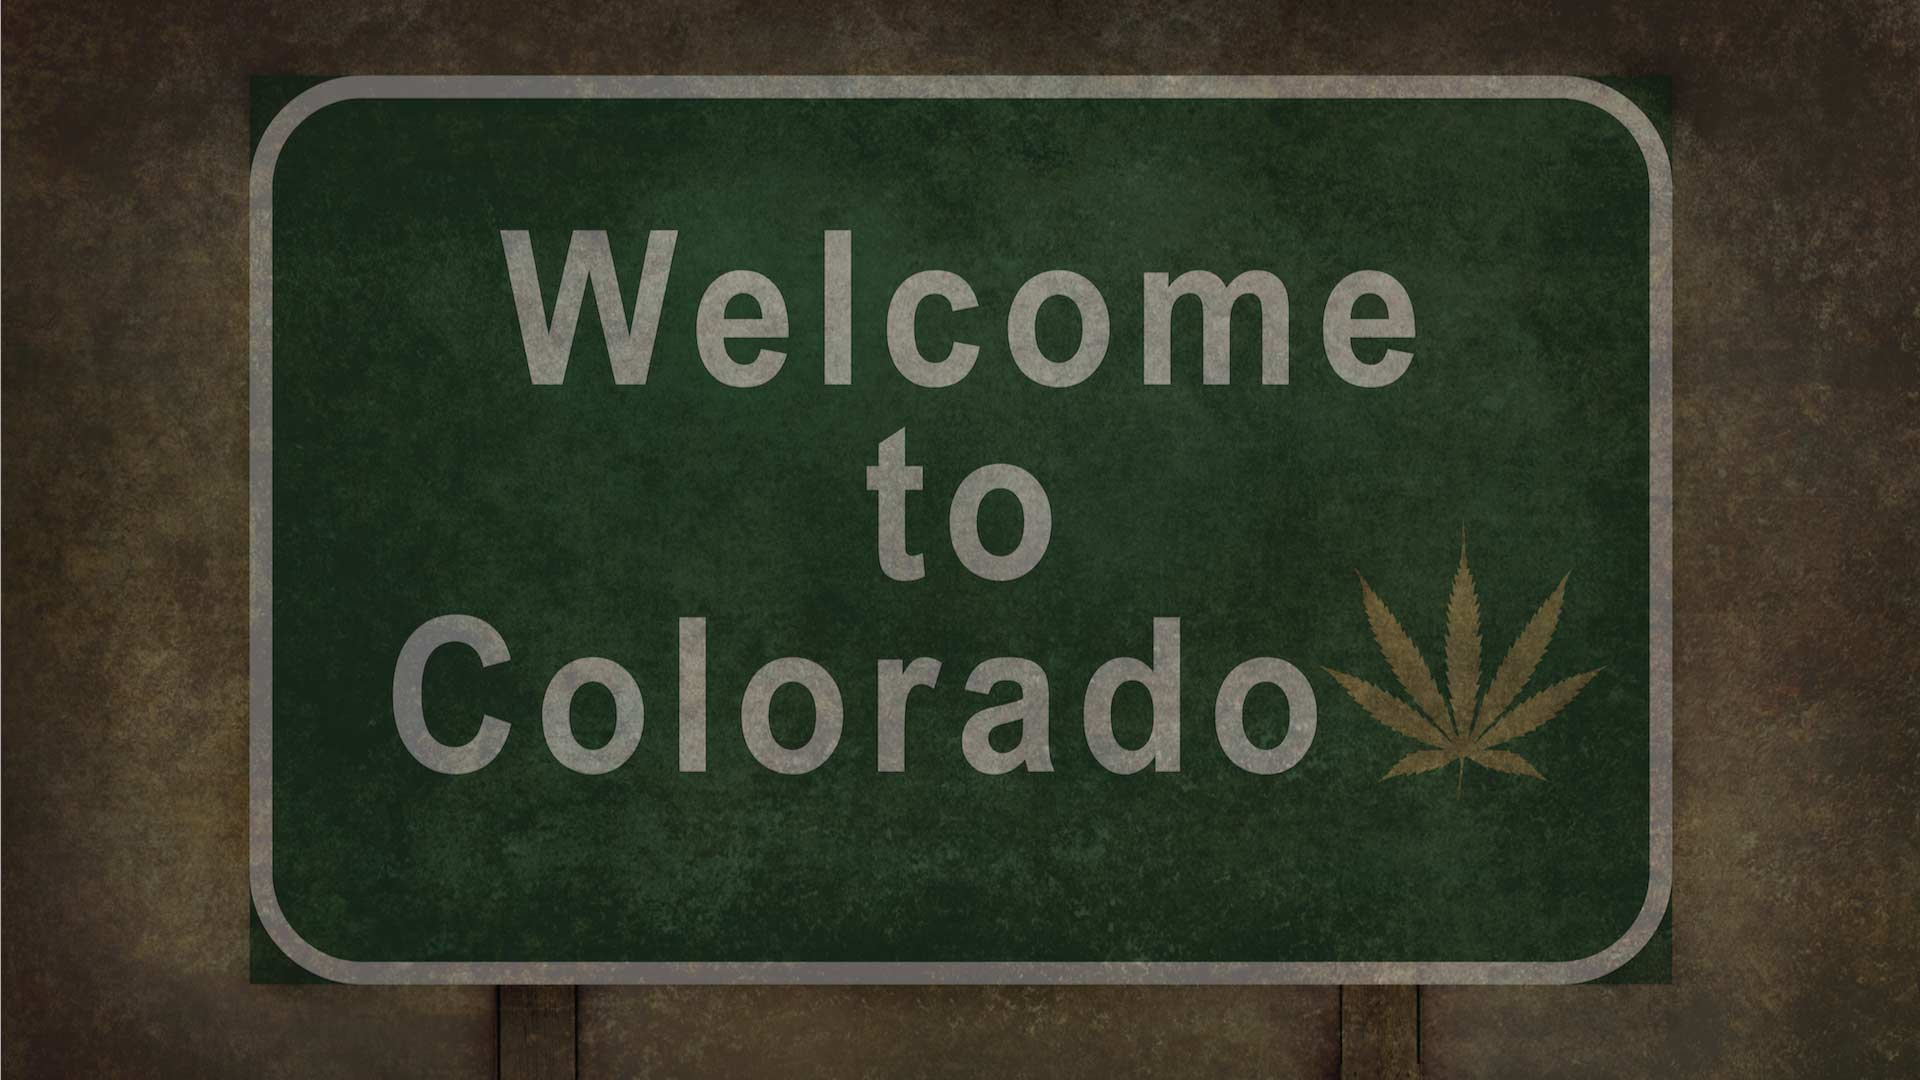 Welcome to Colorado sign with a pot leaf